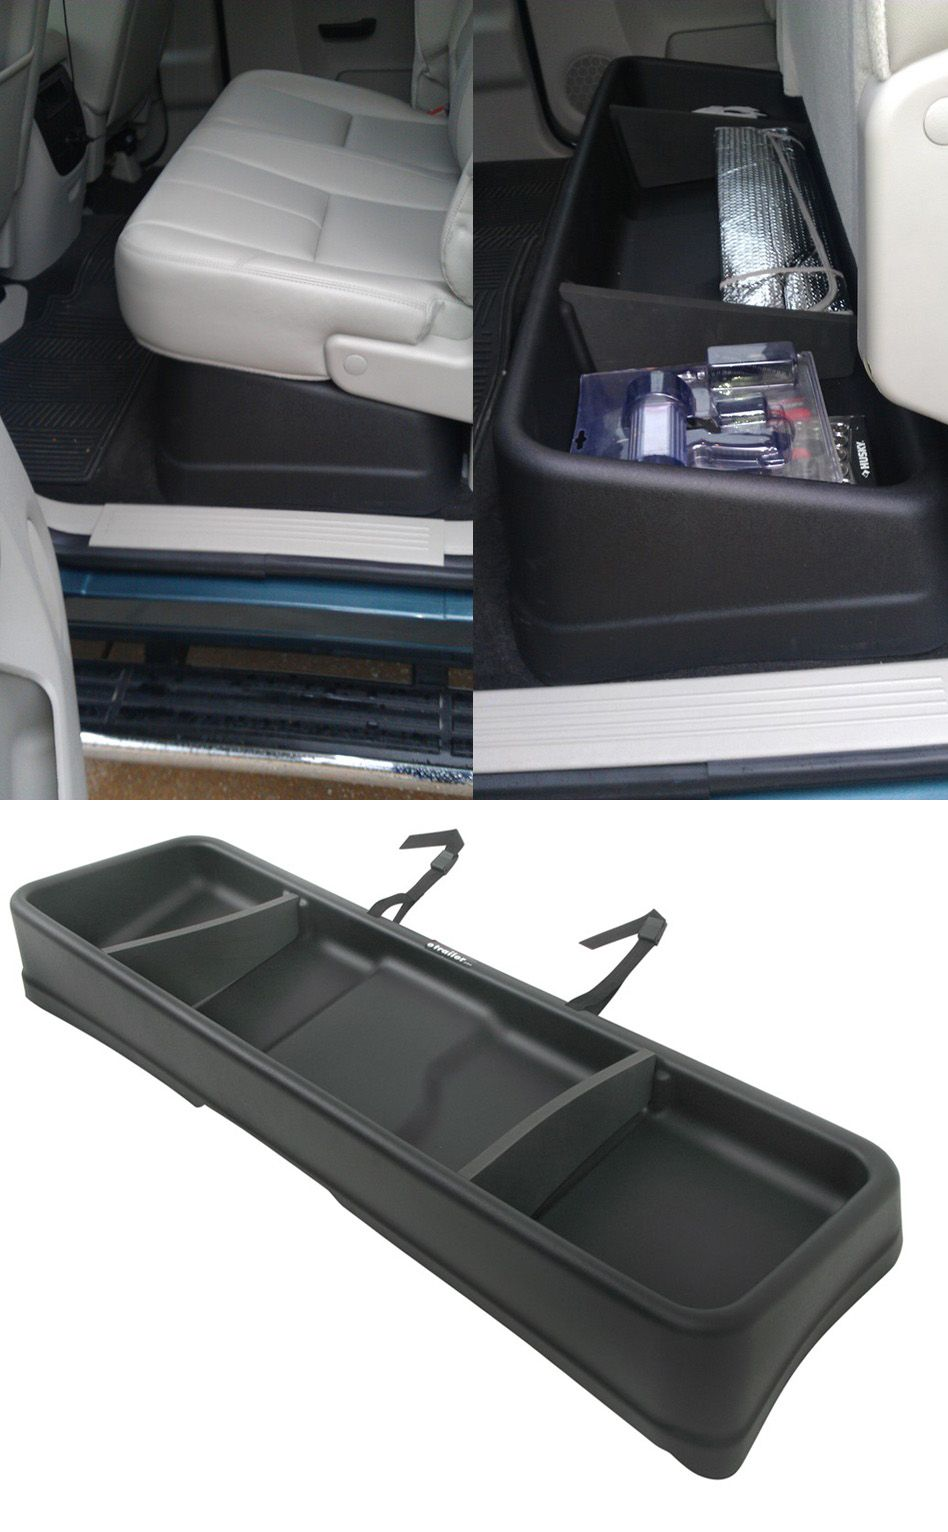 large capacity cargo box compatible with the gmc sierra and fits perfectly beneath the rear seats of the truck minimizes cargo shifting store tools  [ 948 x 1532 Pixel ]